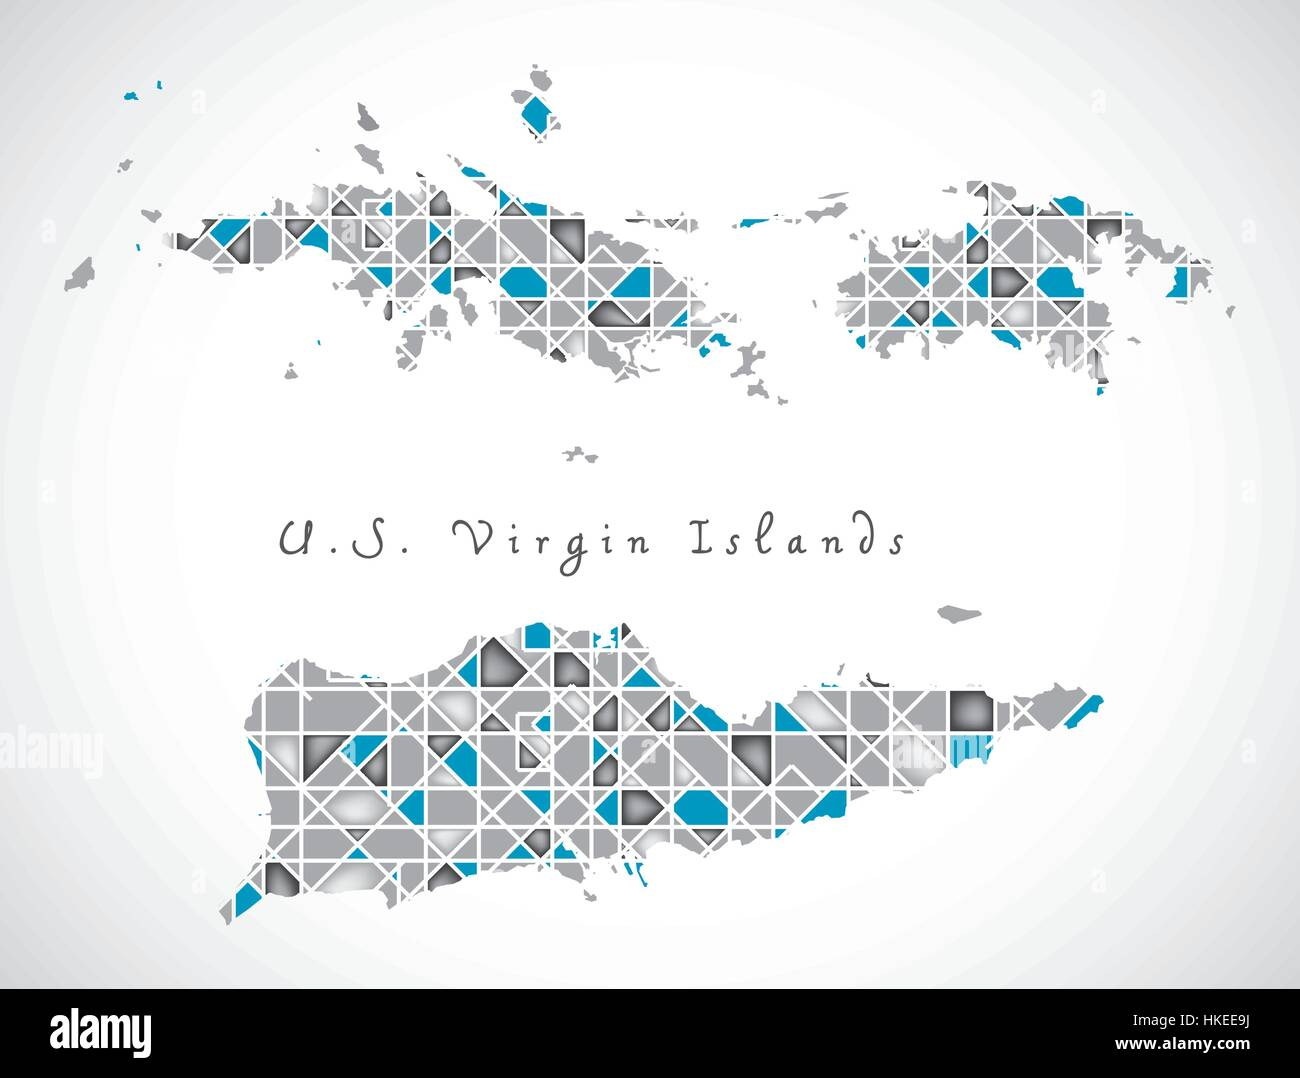 us virgin islands map crystal diamond style artwork ilration